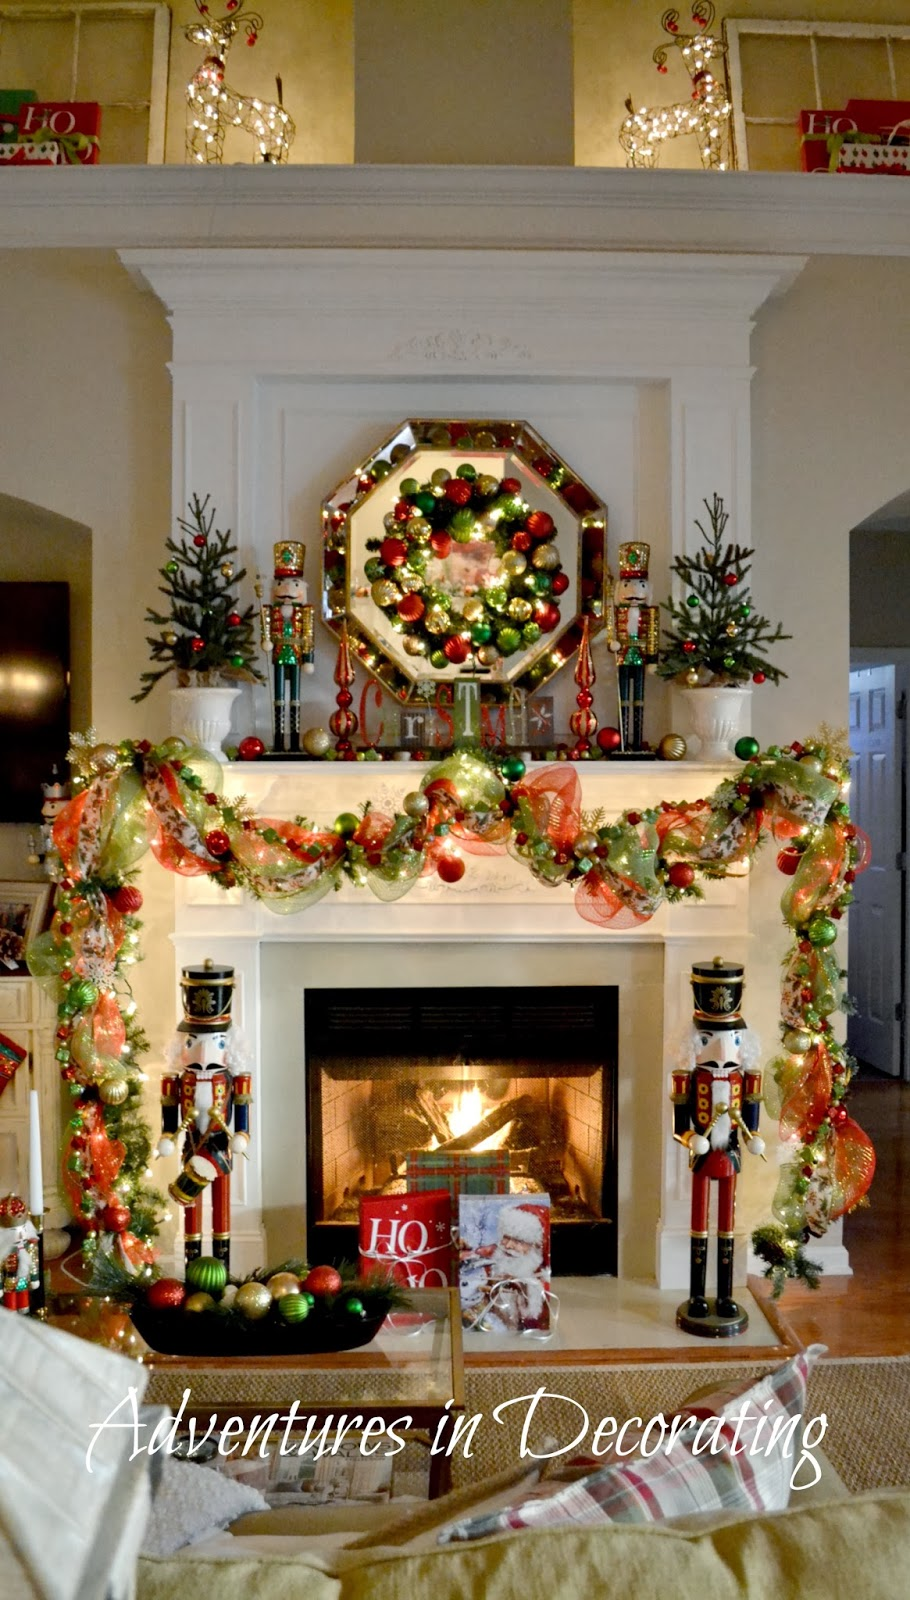 """Adventures in Decorating: Our Christmas Mantel and """"Deck ..."""